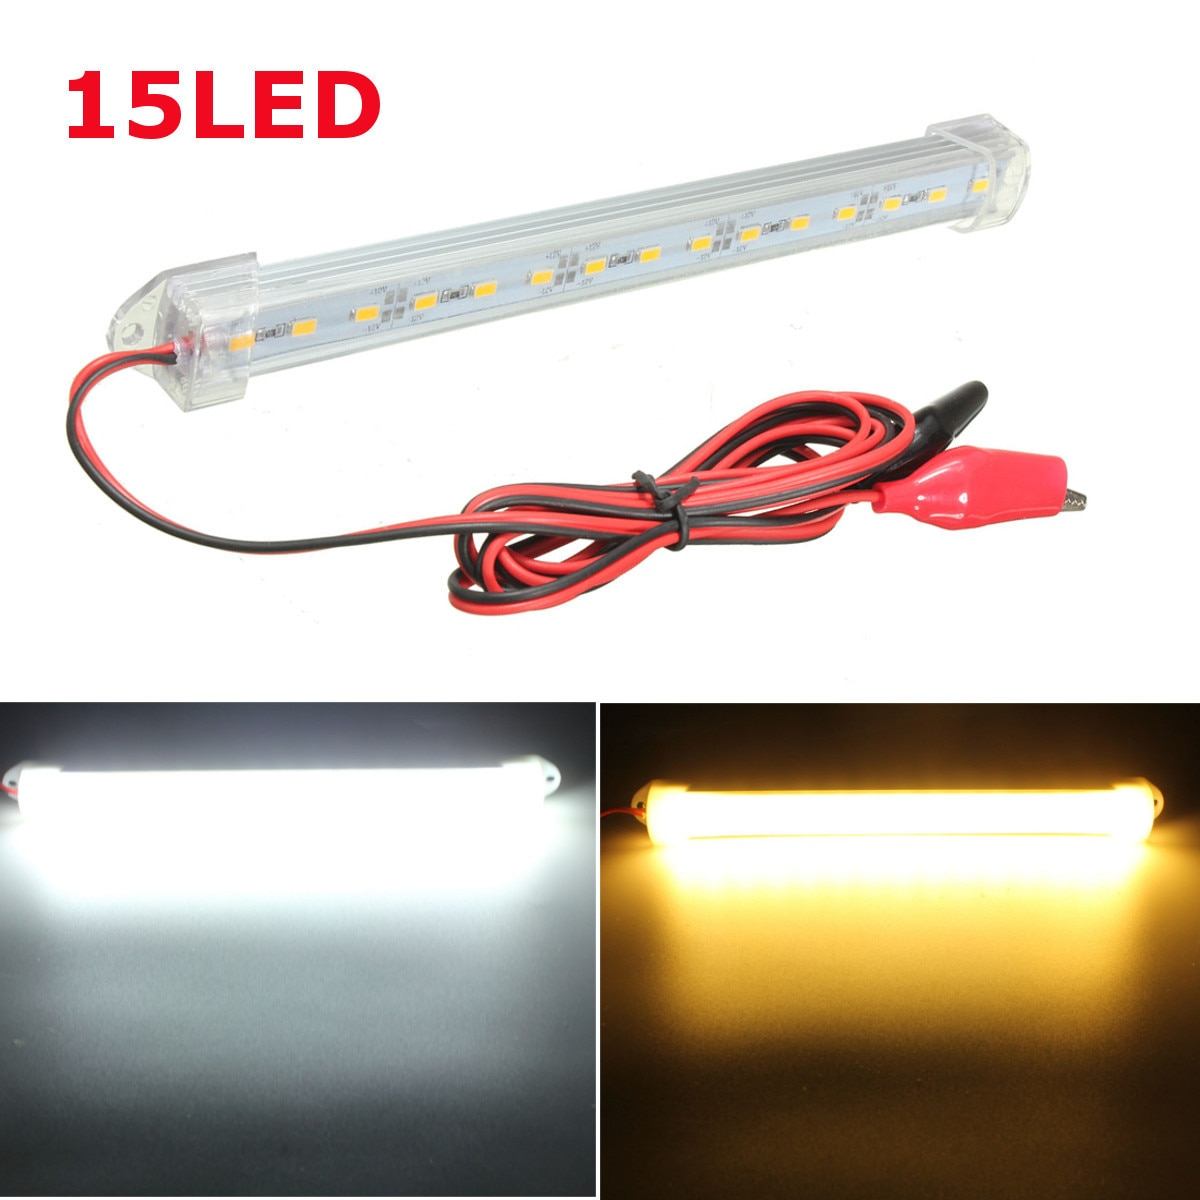 150cm 12V LED Car Interior Light Bar Tube Strip Lamp Van Boat Caravan